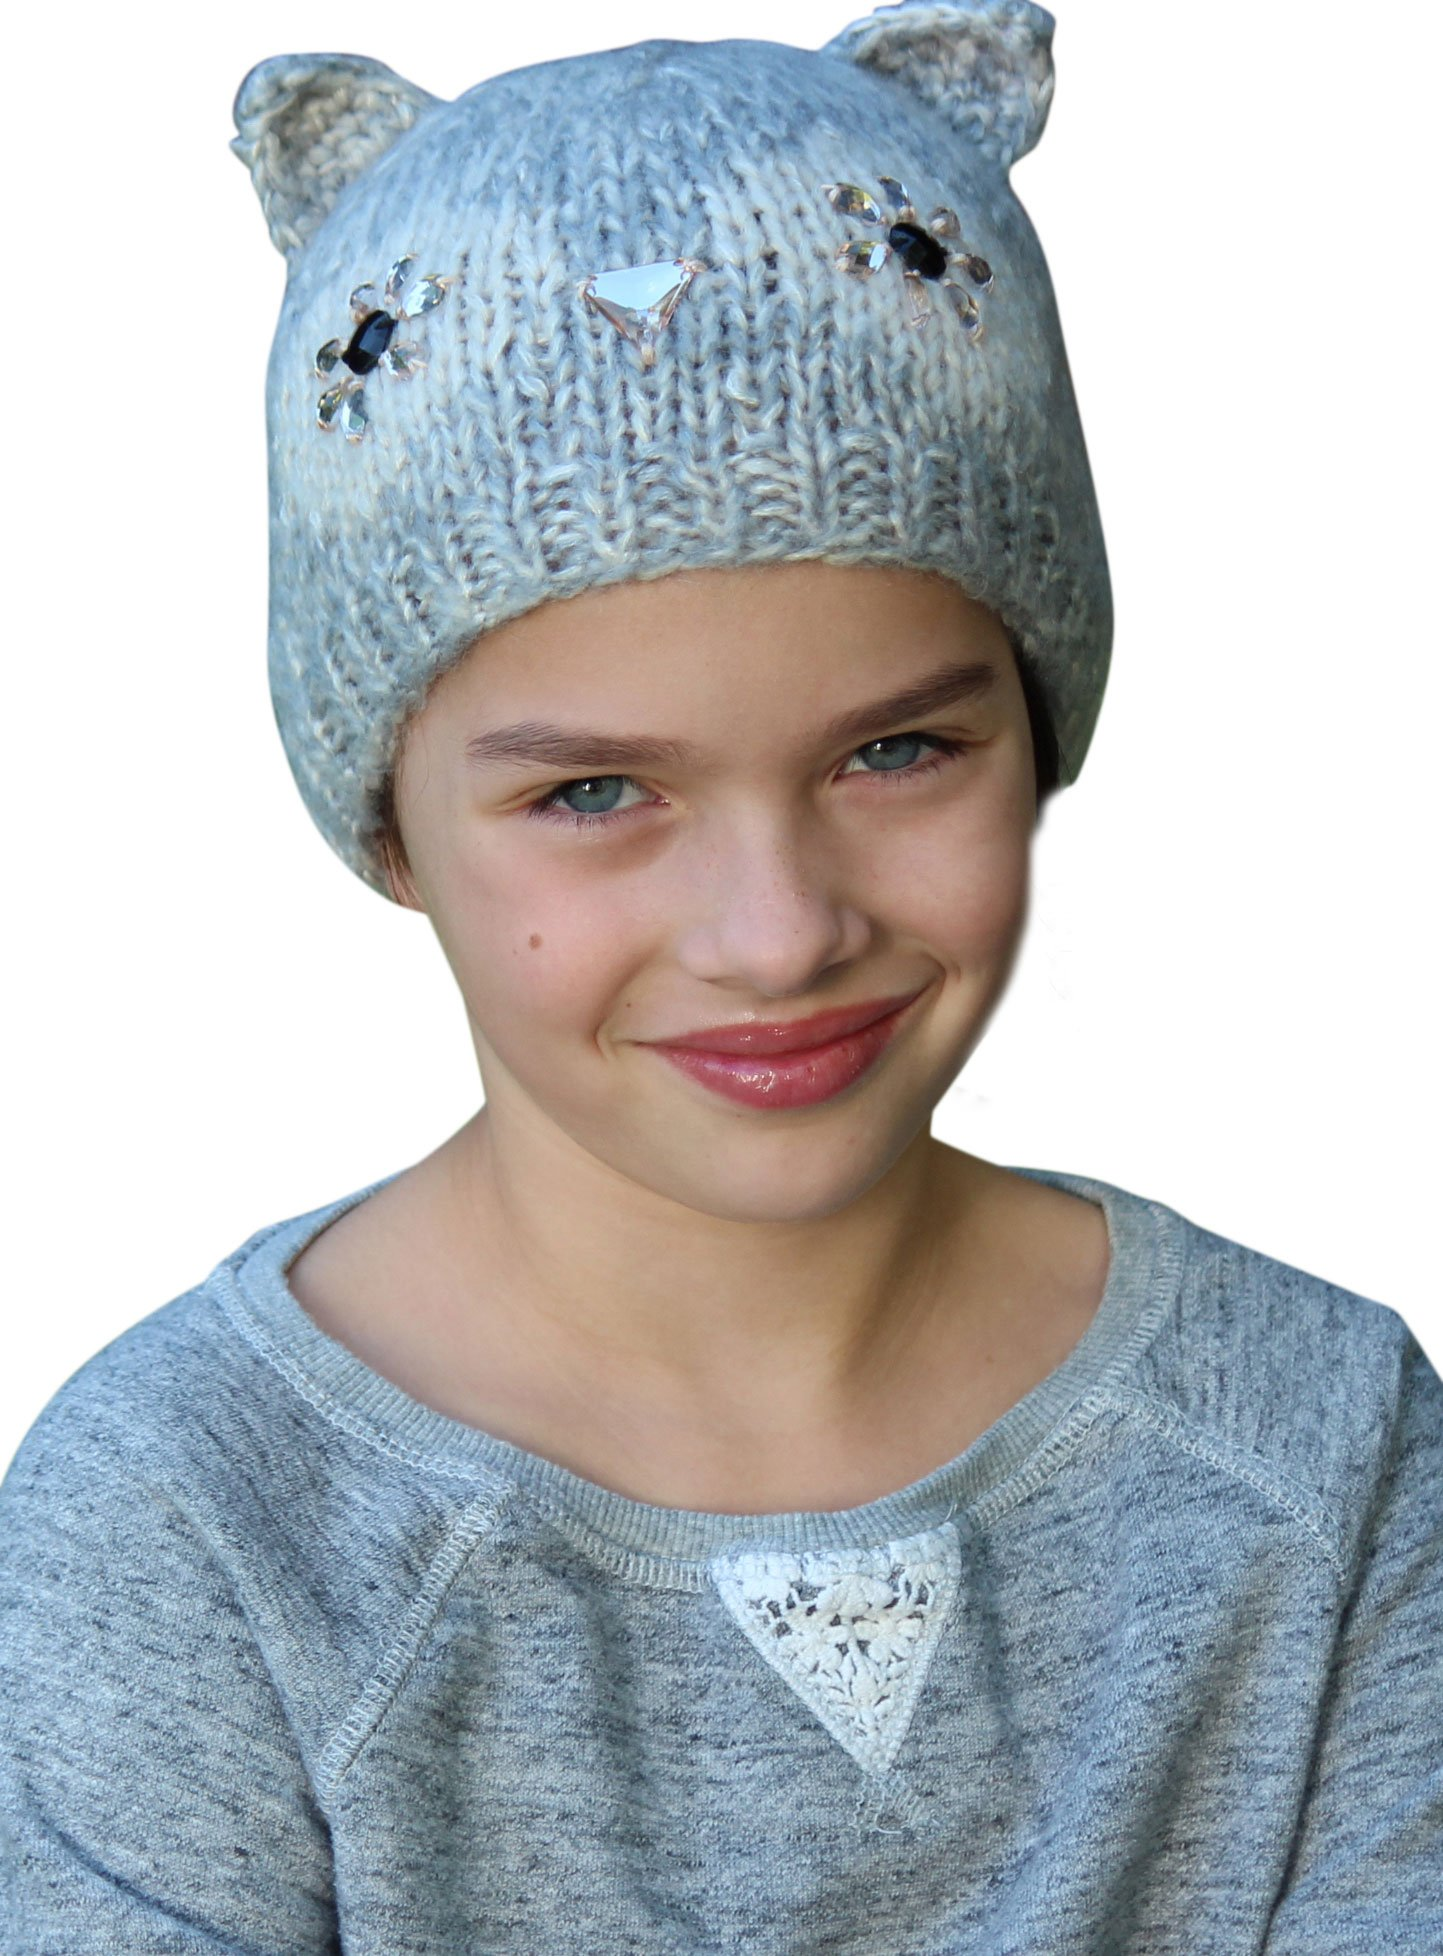 Girl's Knit Hat Warm Winter Beanie Chemo Cap Alopecia Owl Animal Ages 3 to 8 by Hats Scarves & More (Image #1)